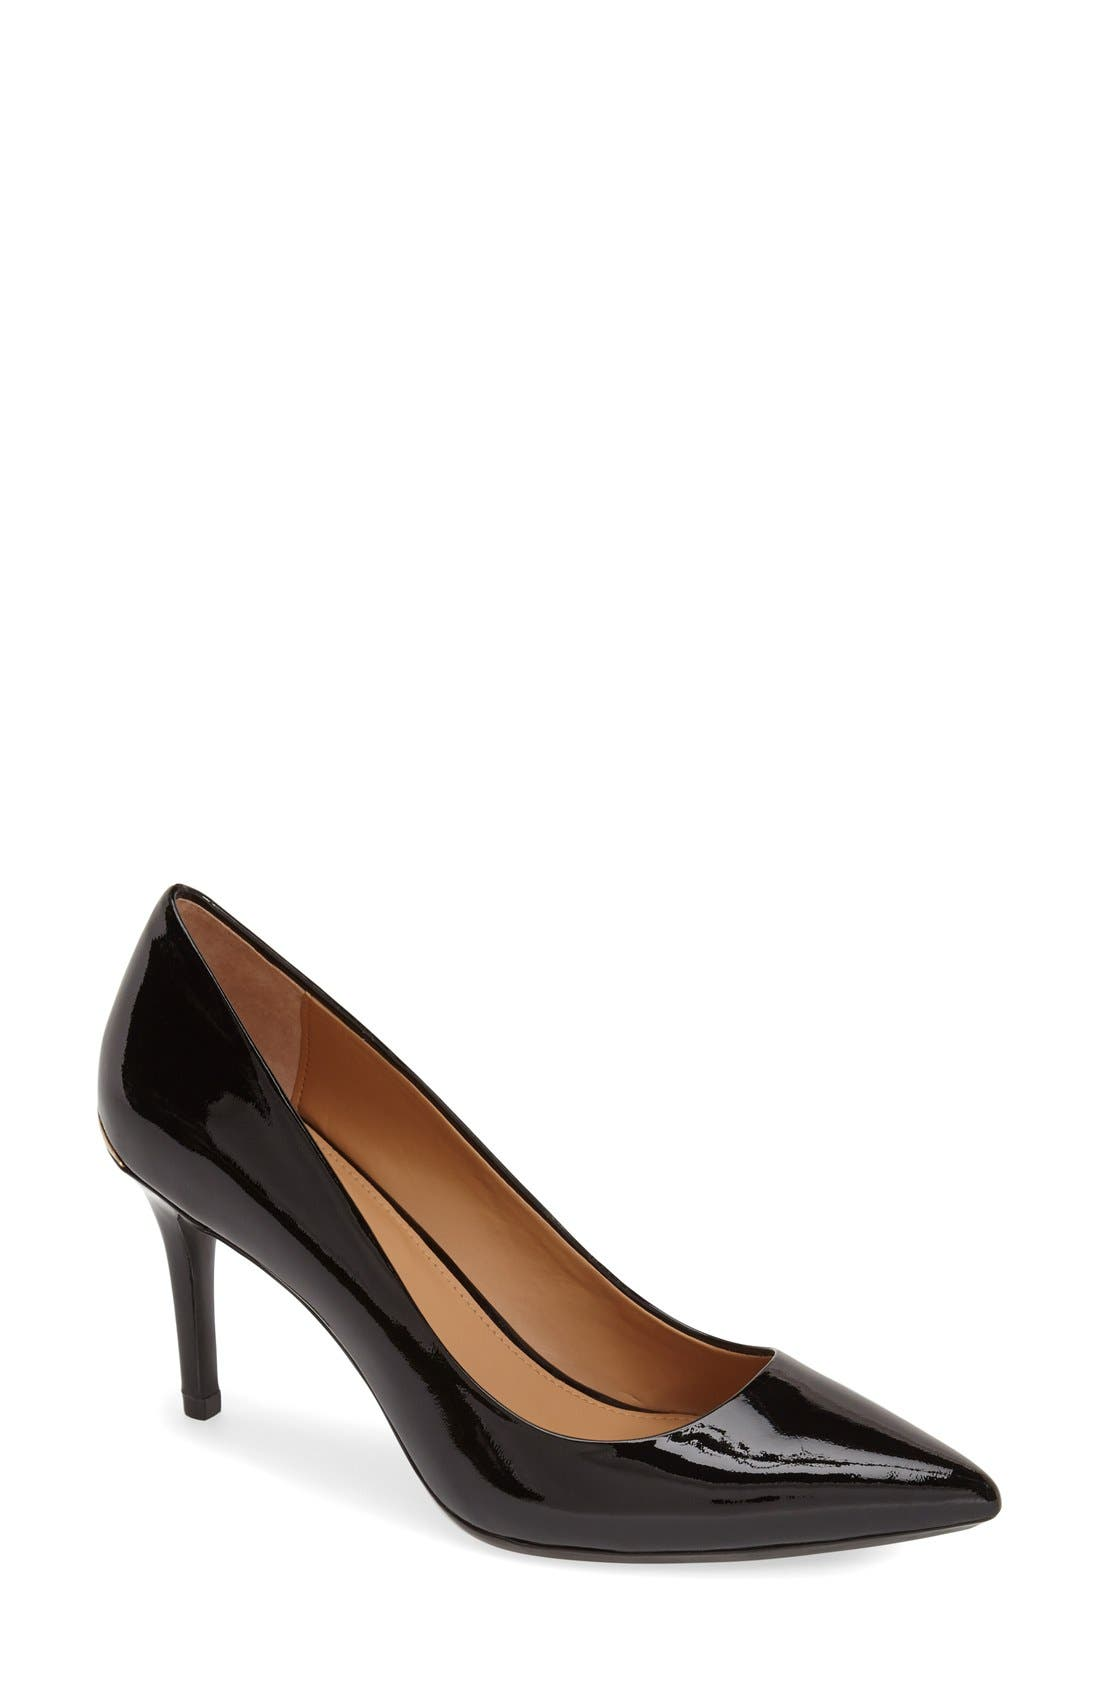 CALVIN KLEIN, 'Gayle' Pointy Toe Pump, Main thumbnail 1, color, BLACK PATENT